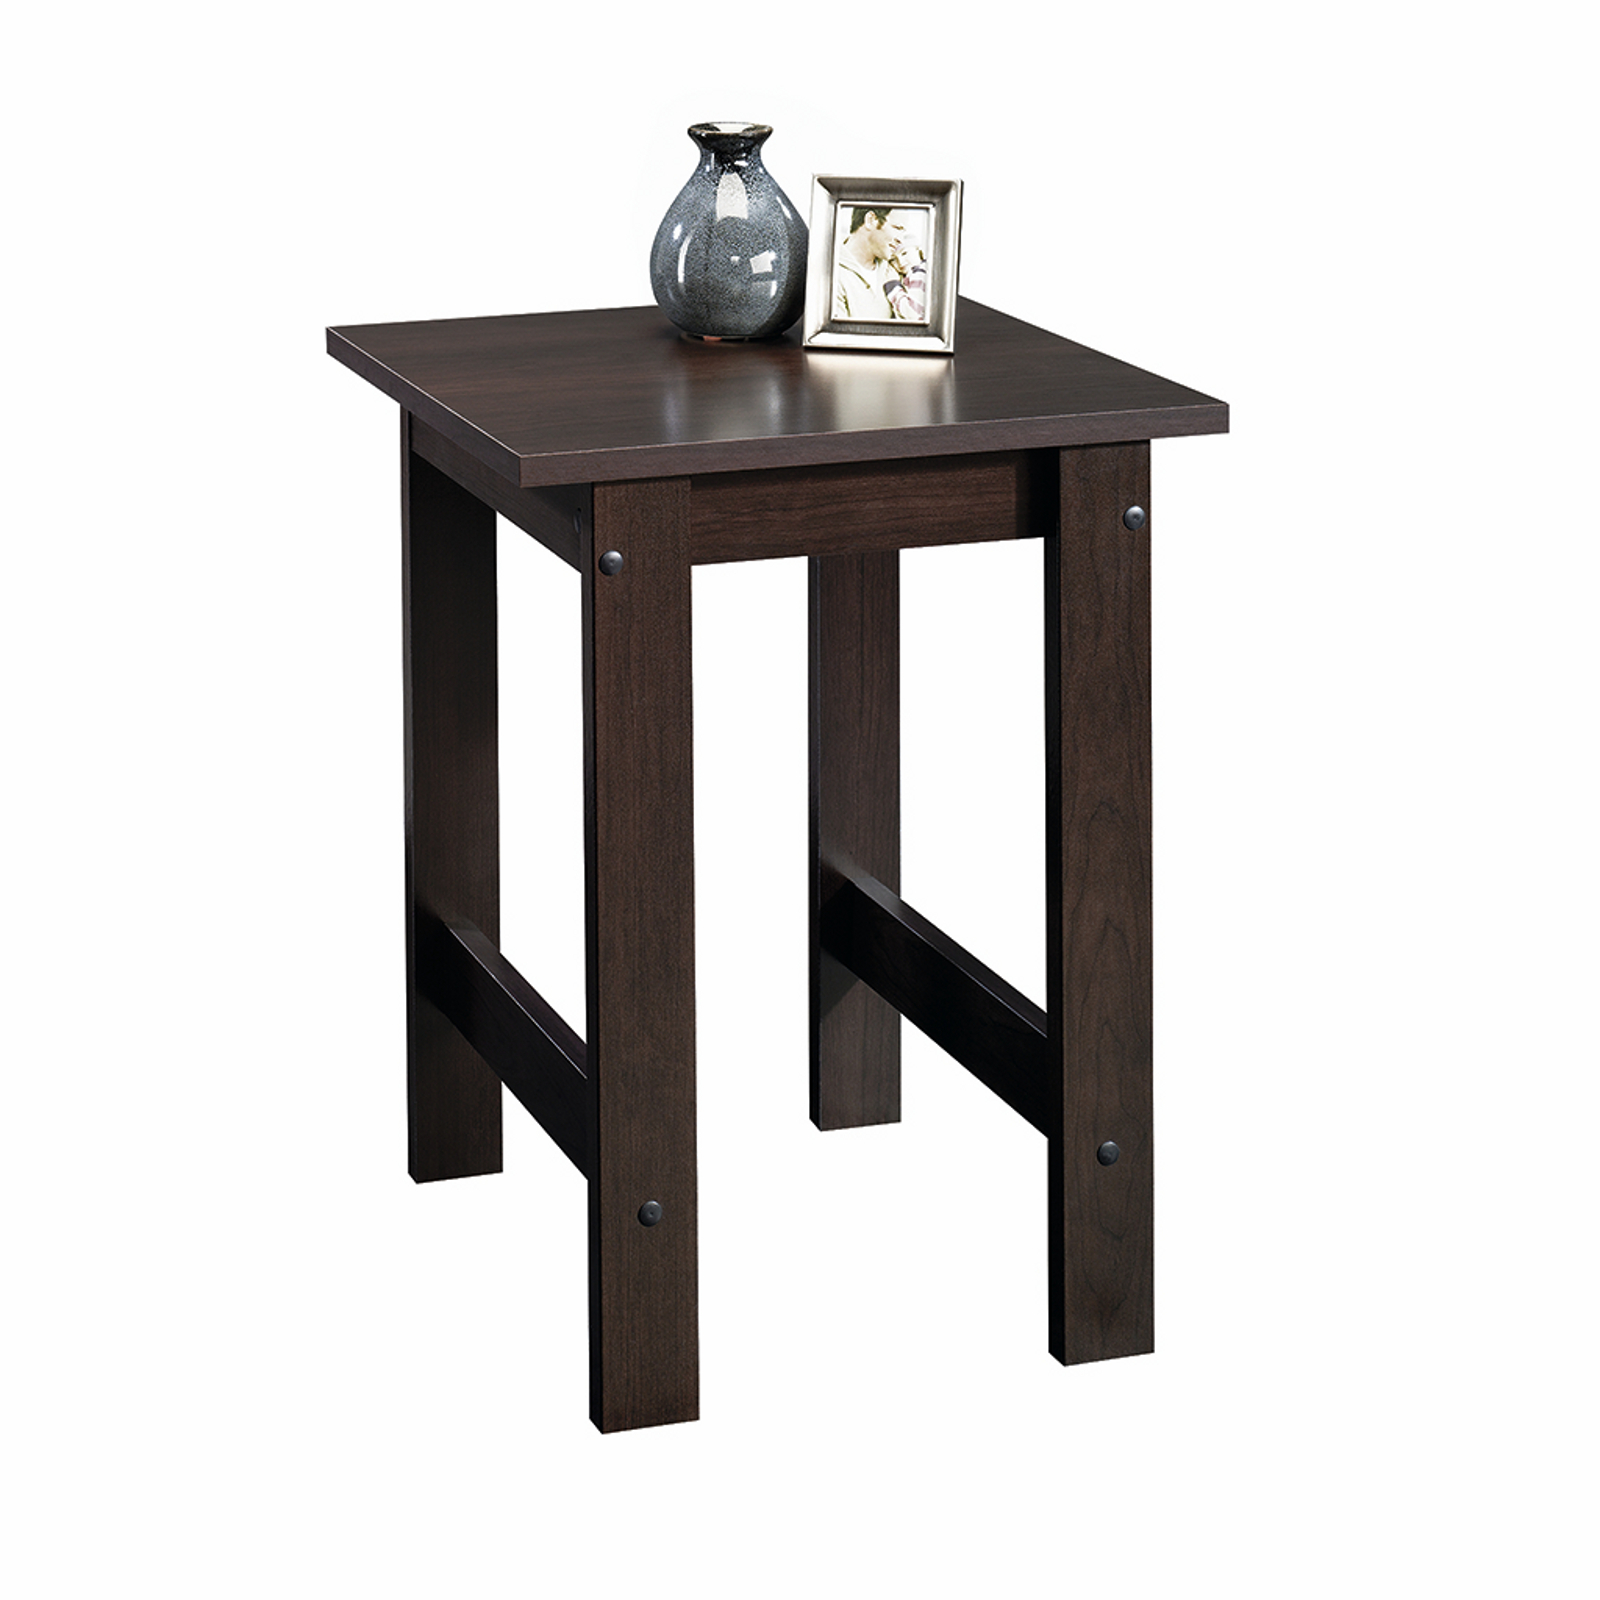 sauder beginnings side table cinnamon cherry spin prod unique small end tables west elm round accent for living room coffee bar gray wash vintage lamps bedroom recliners cement